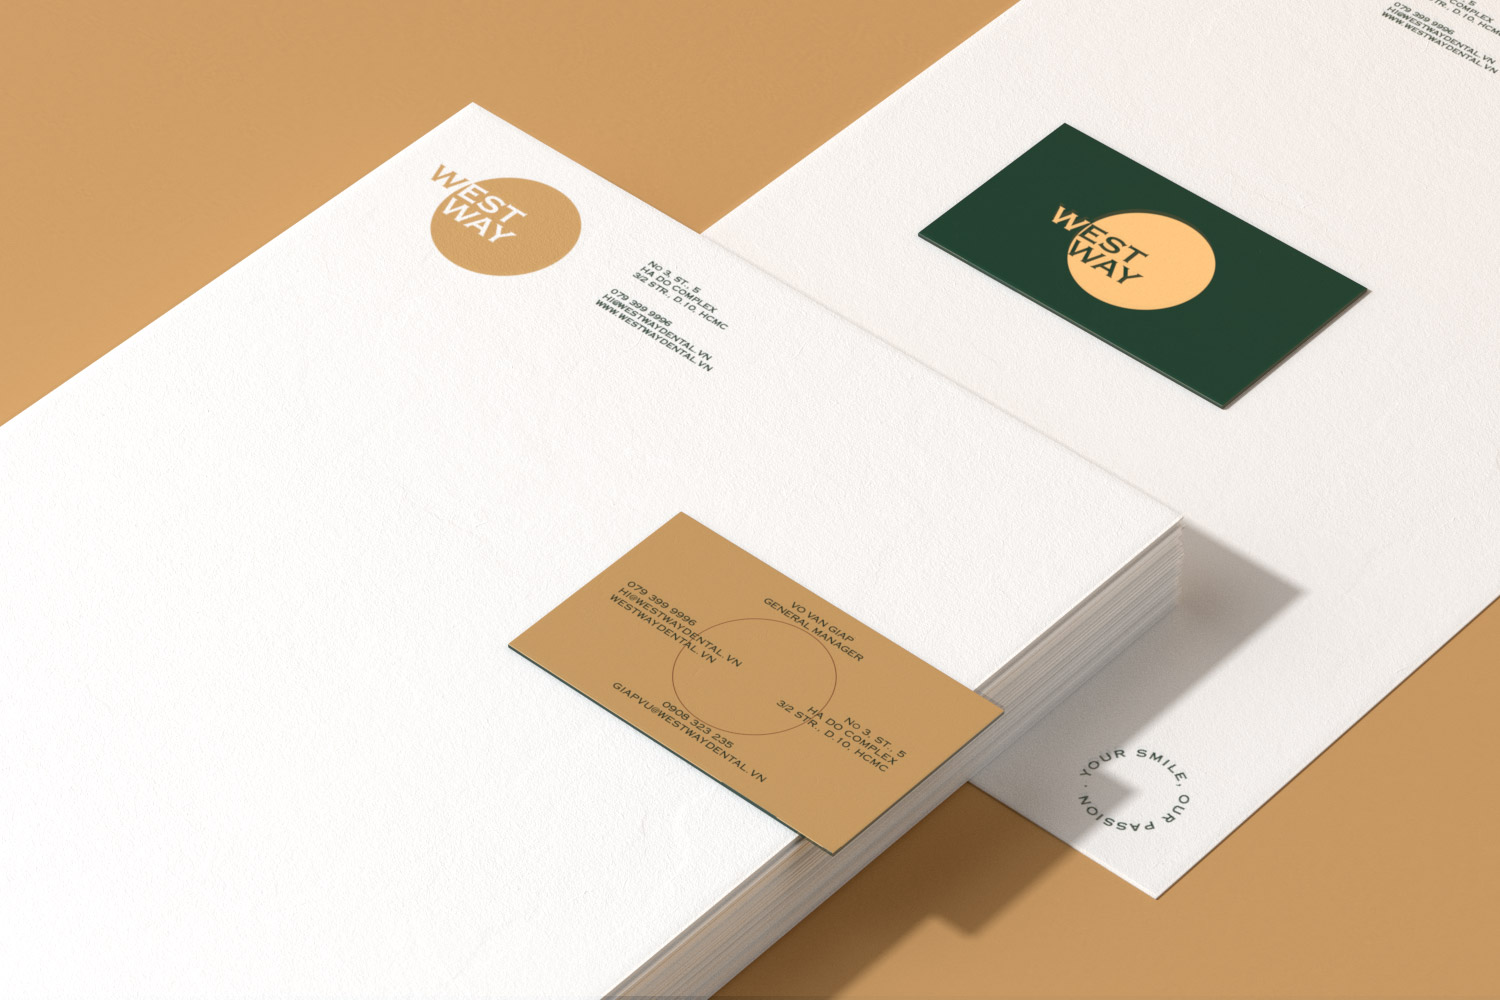 Westway letterhead with business cards